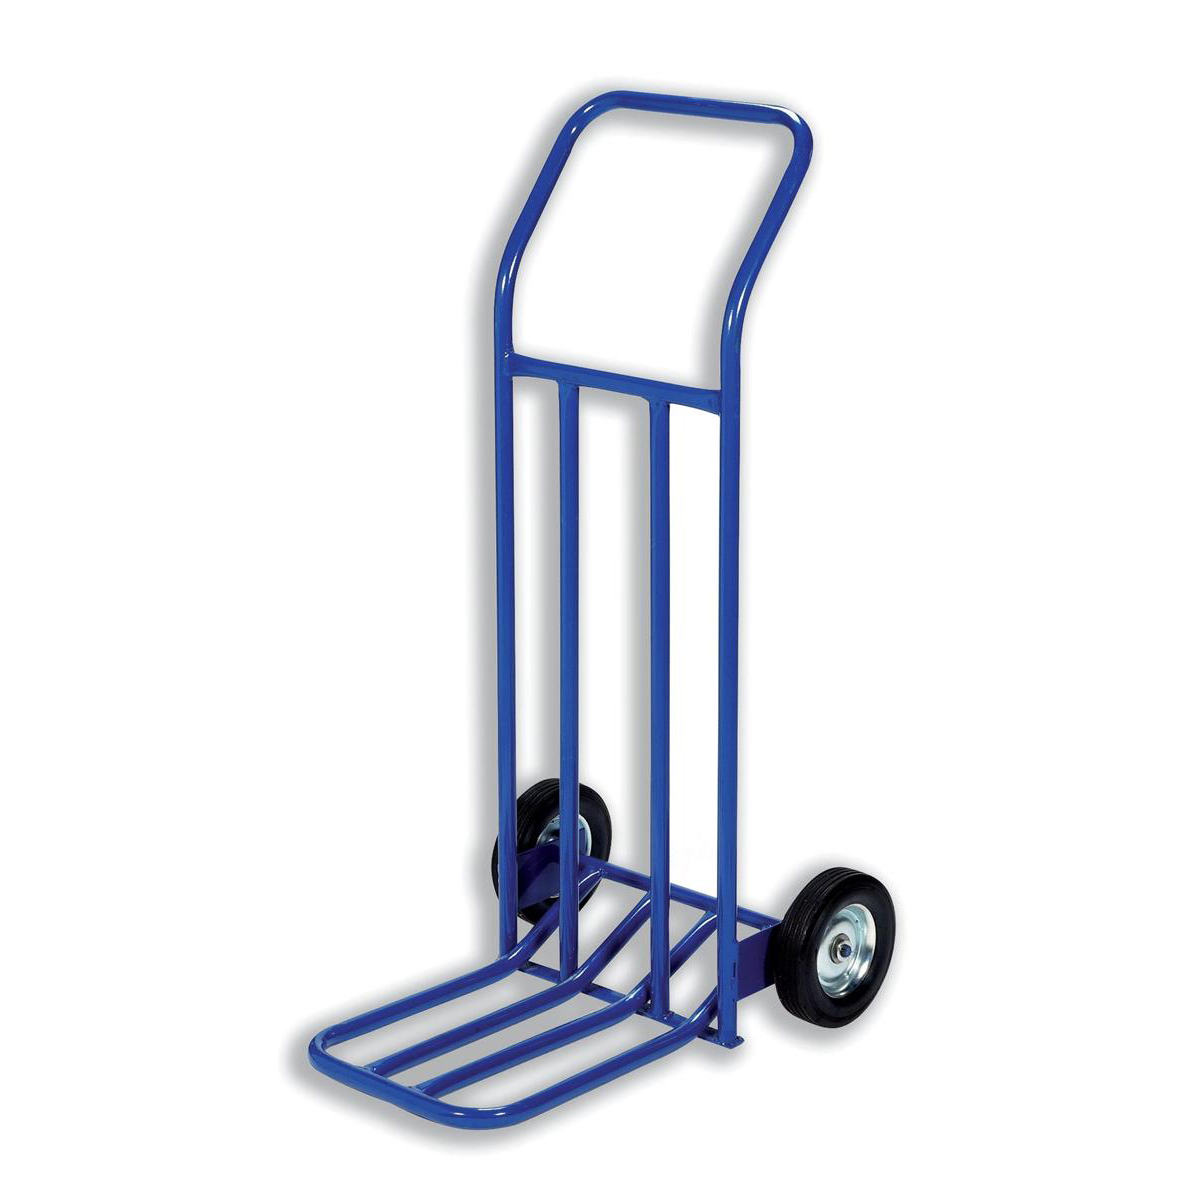 Trolleys Hand Trolley Capacity 160kg Foot Size W565xL640mm Blue